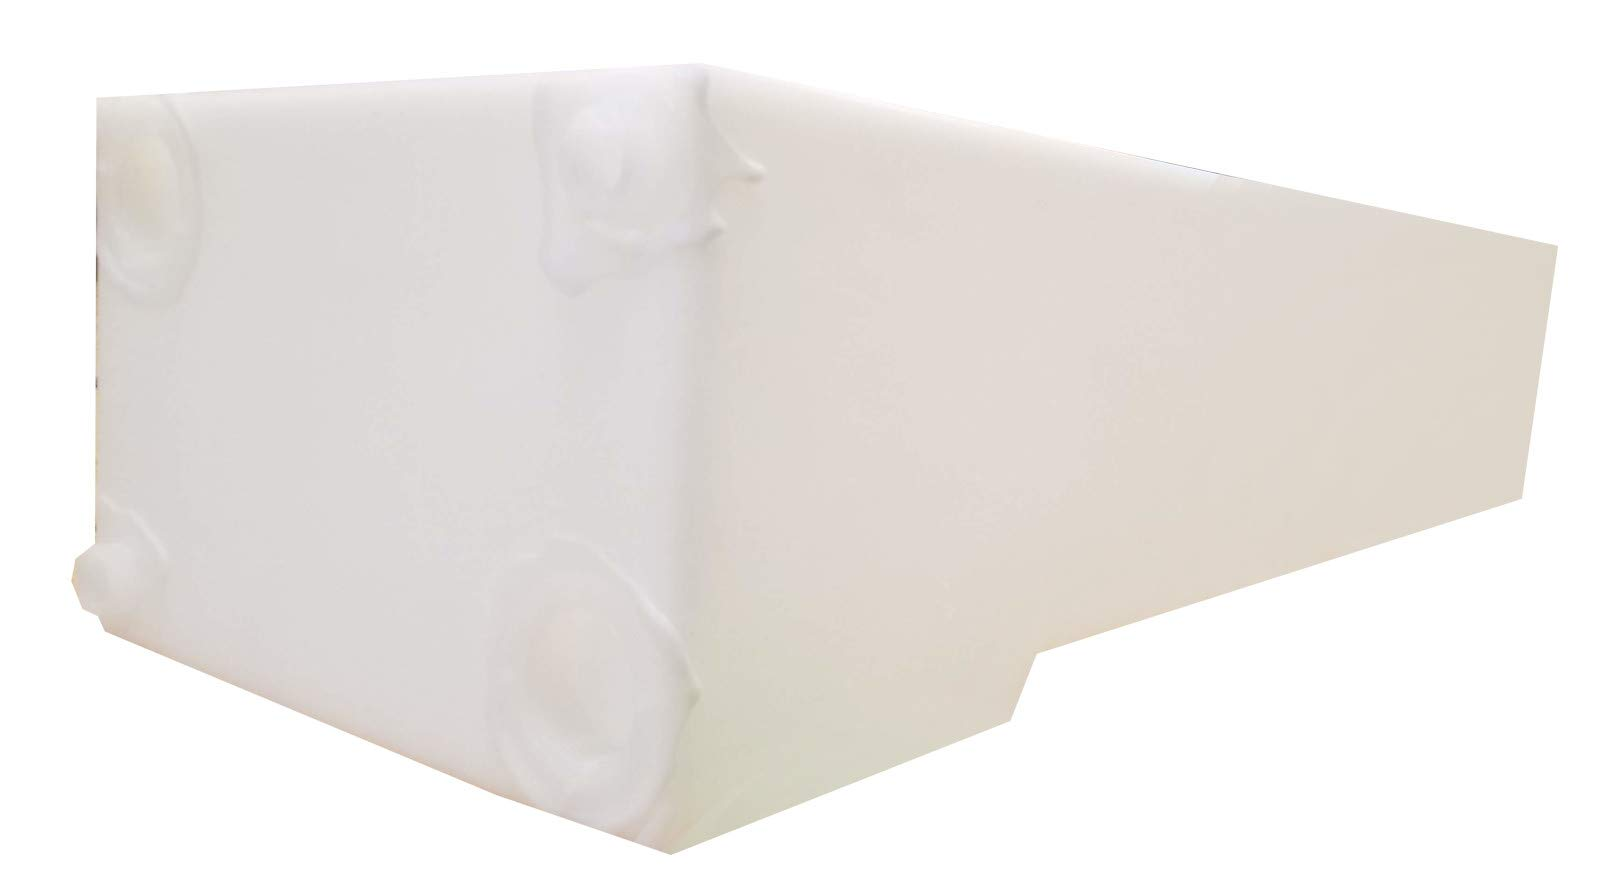 Class A Customs NSF/FDA Approved BPA Free - UM - 15 Gallon Fresh or Gray Water Holding Tank rv Concession Trailer UM-1500